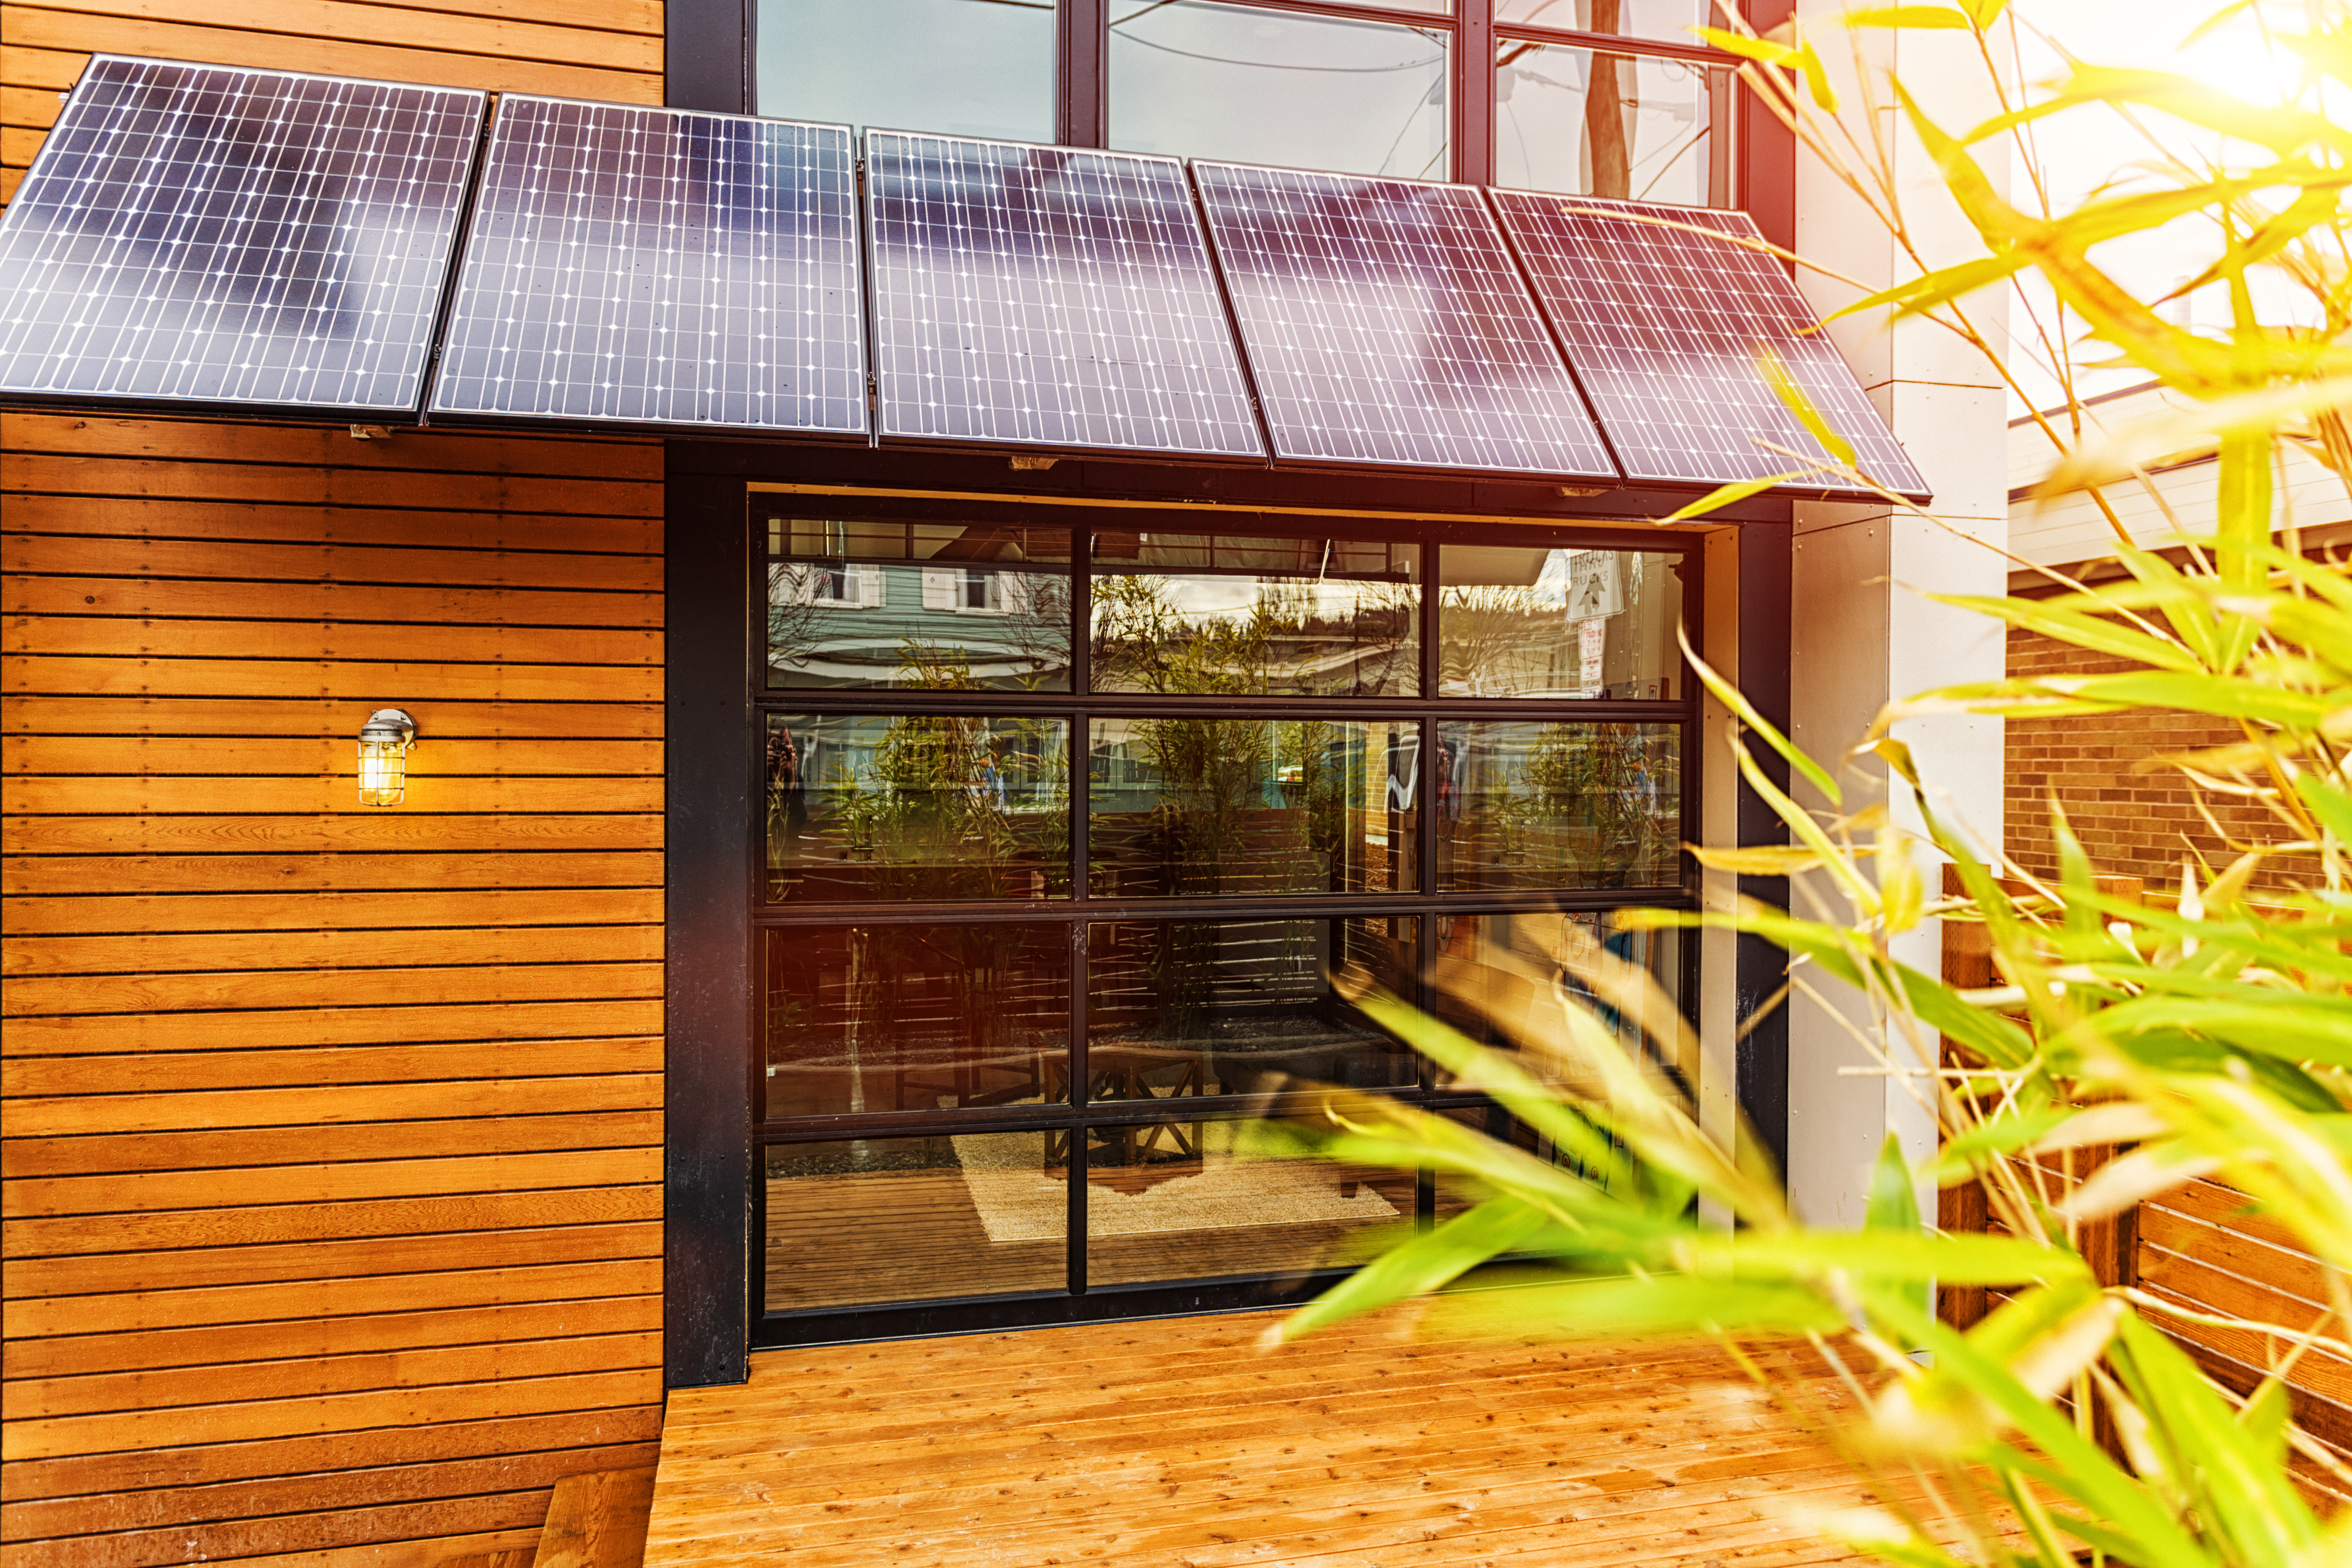 Modern Home with Solar Panel Awning